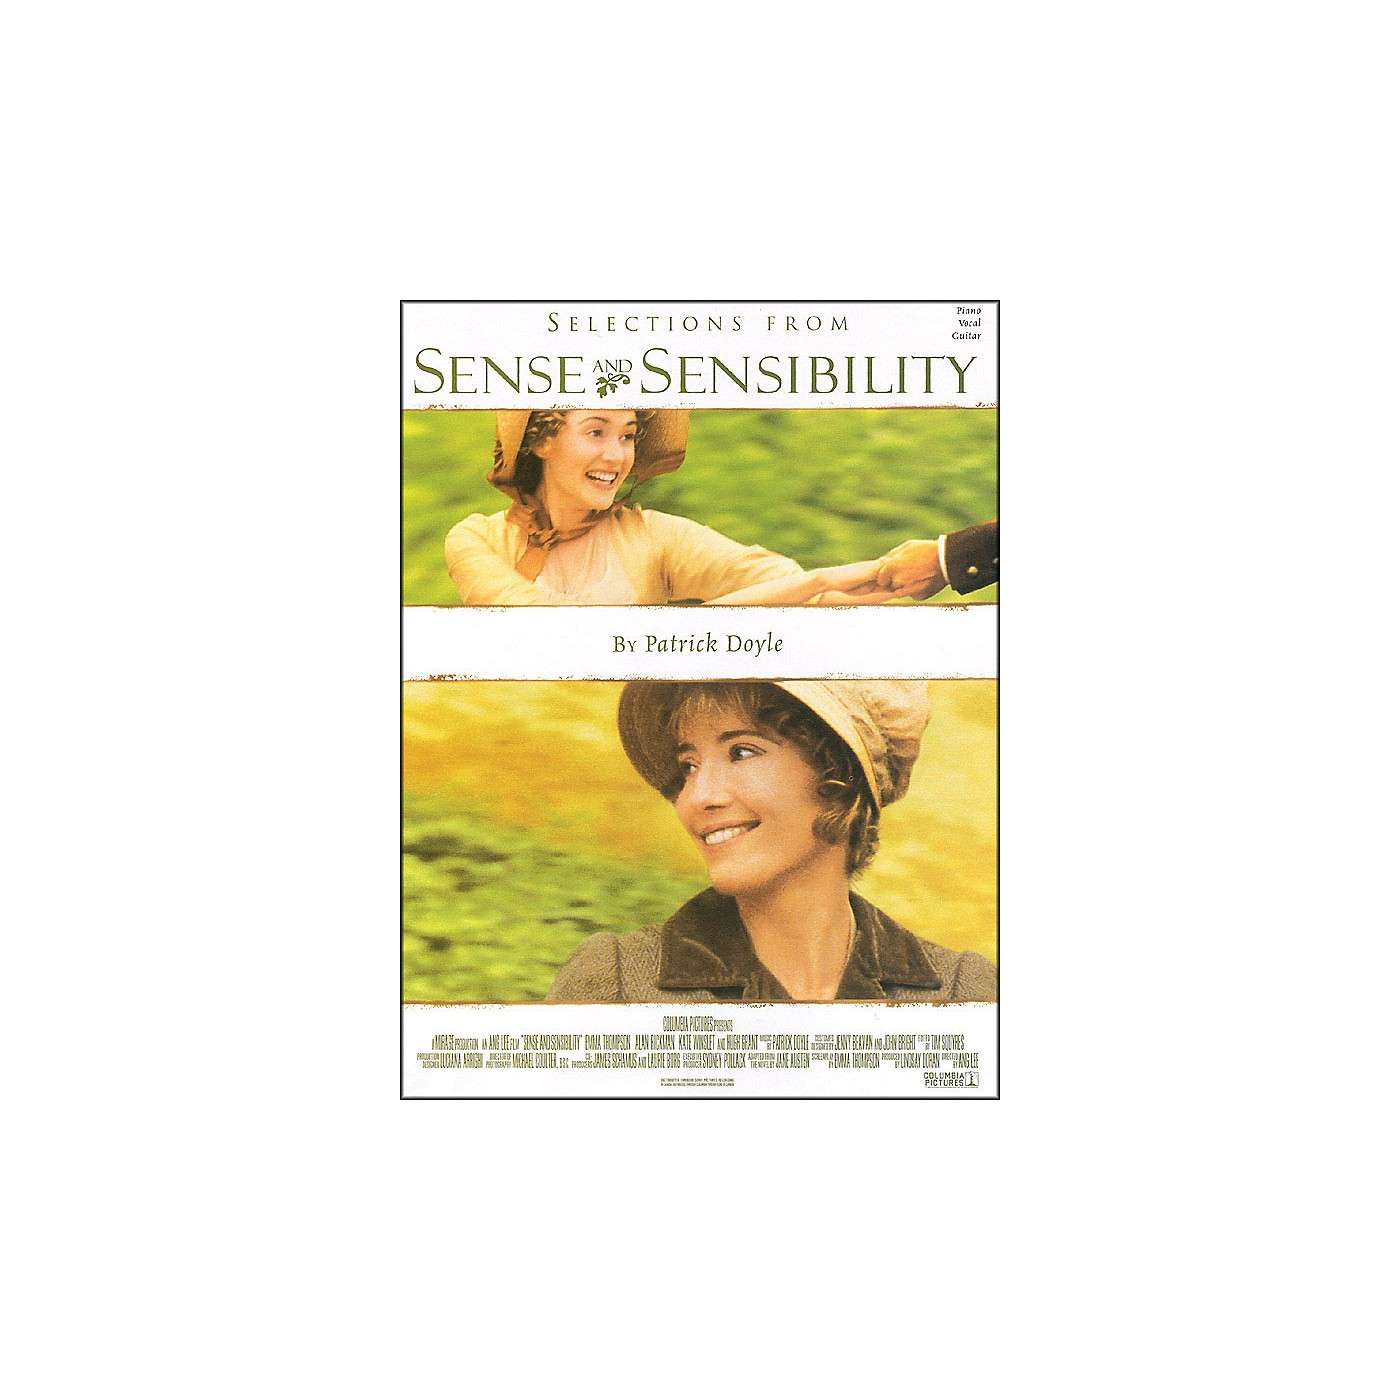 Hal Leonard Selections From Sense And Sensibility arranged for piano, vocal, and guitar (P/V/G) thumbnail